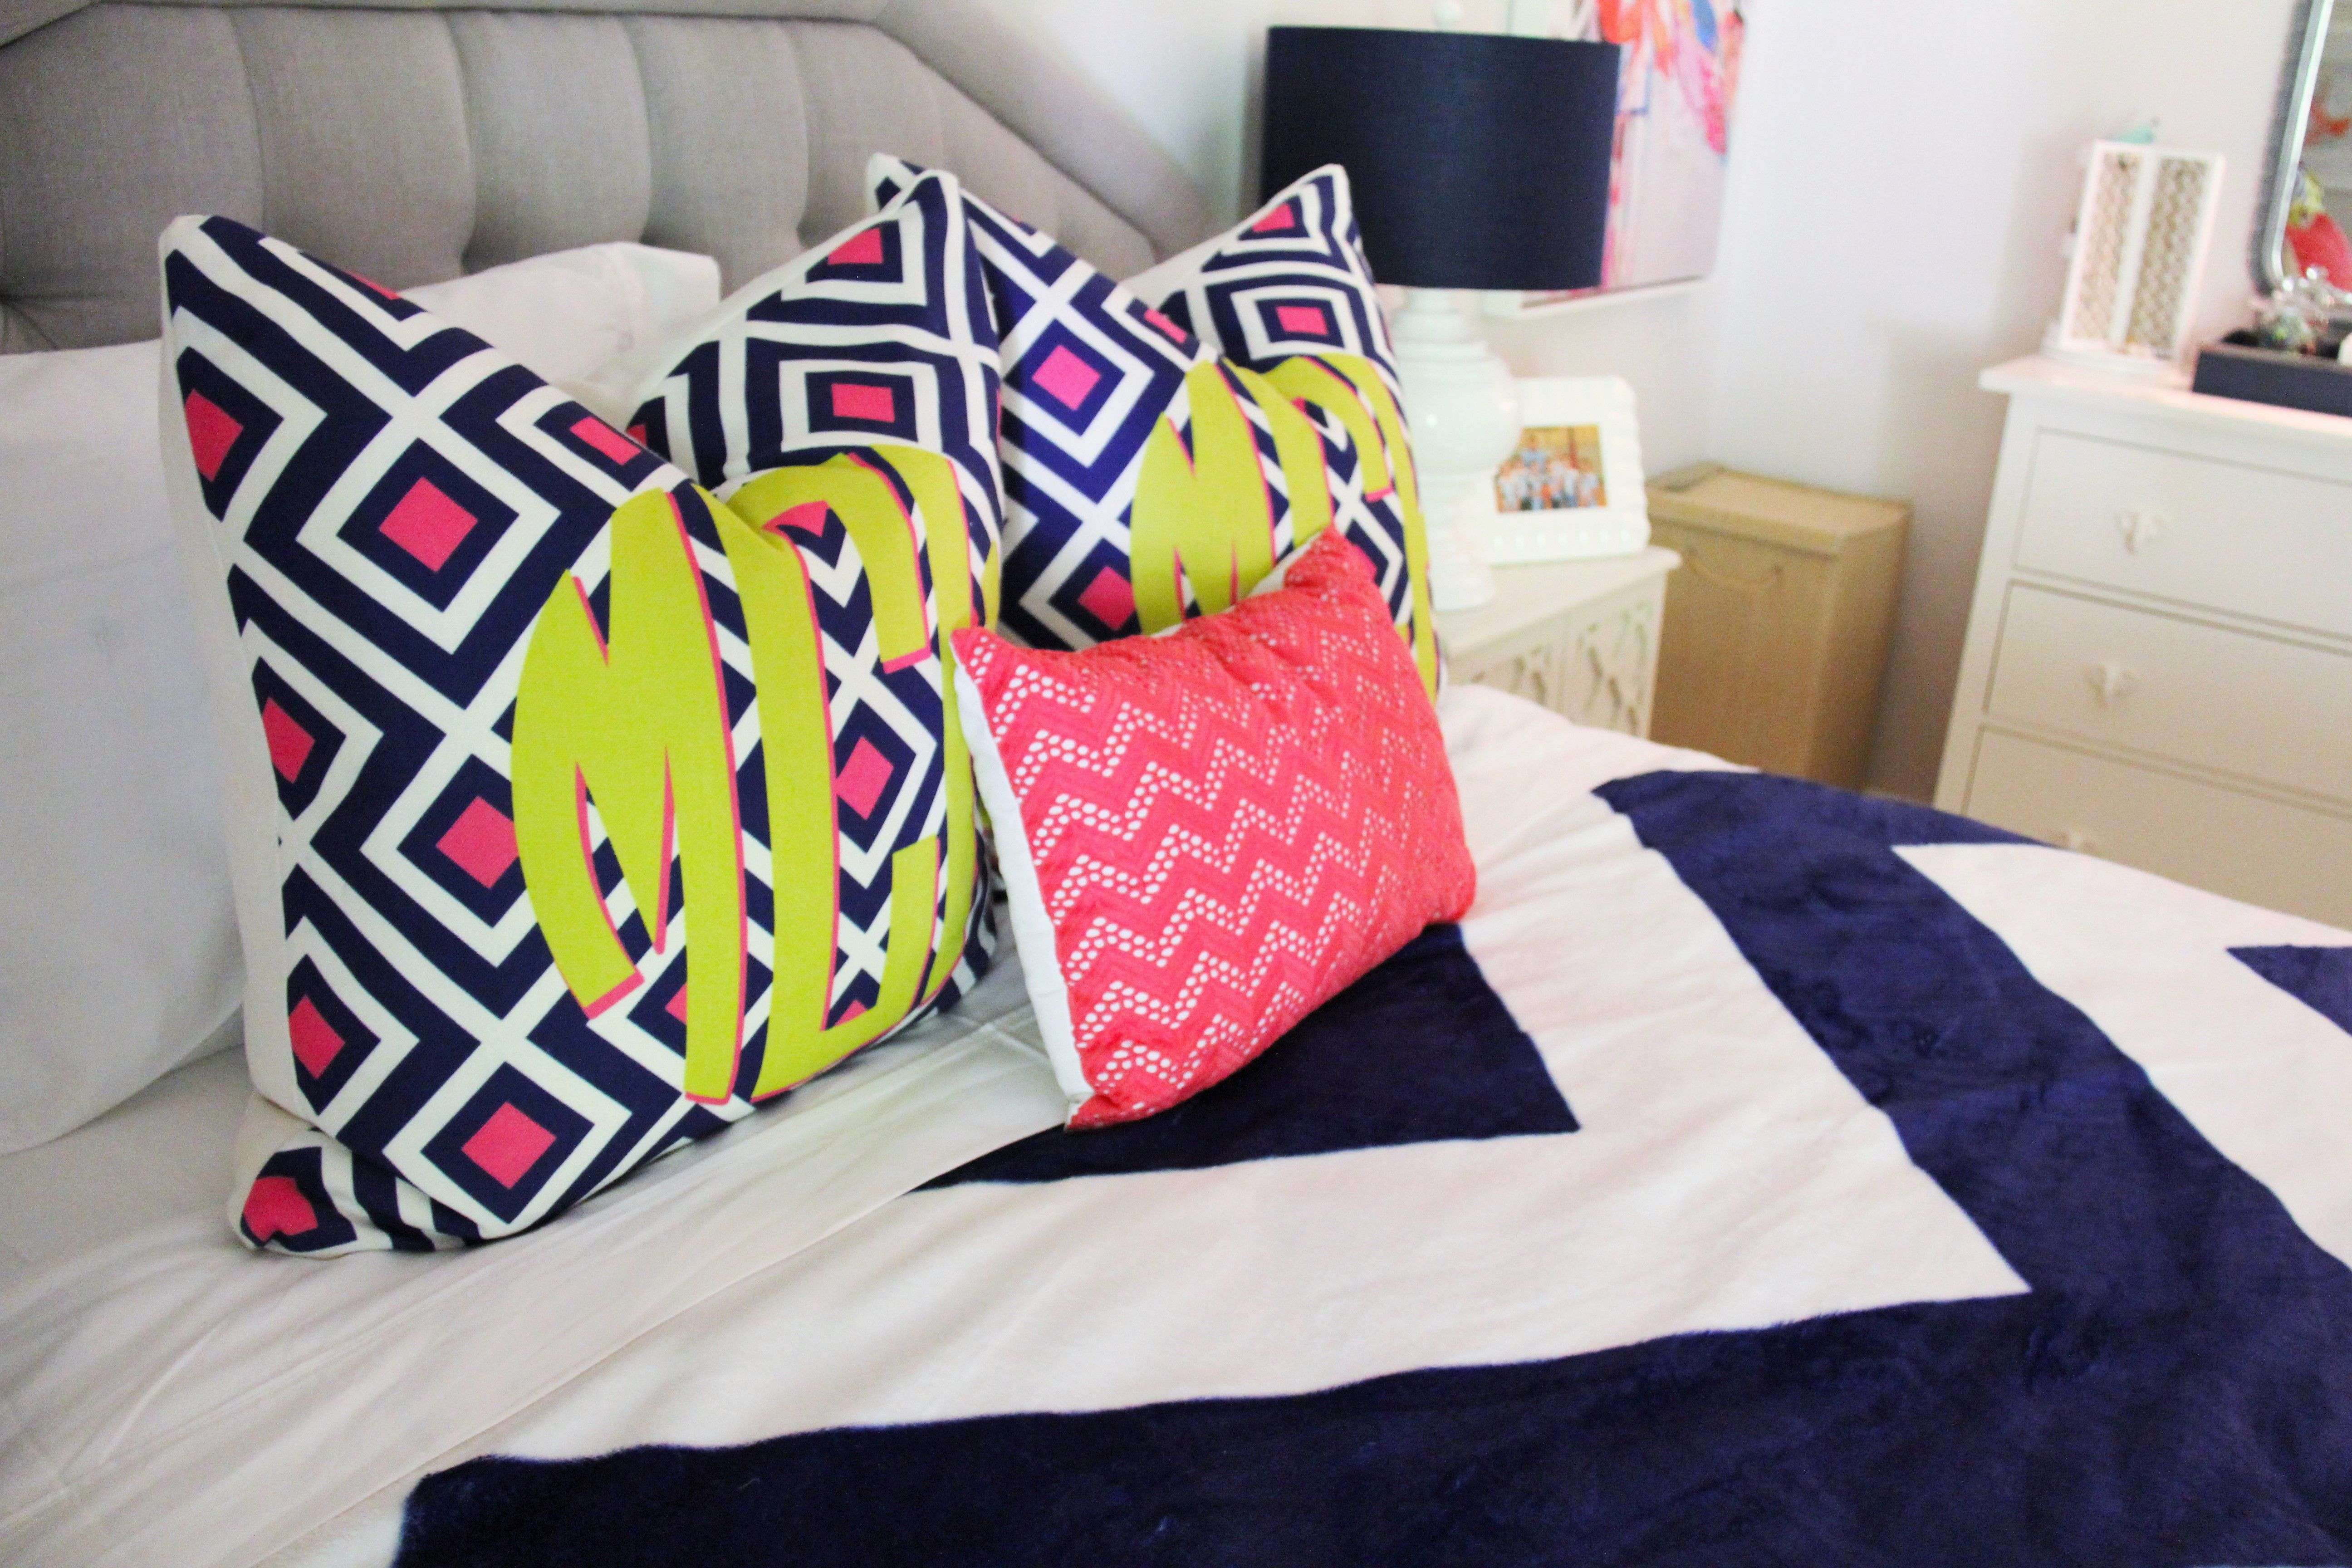 Refresh your teen's bedroom to last! Add modern touches in fresh colors with pops of fun! Sophisticated and modern, its sure to last until college! | Sumptuous Living | http://sumptuousliving.net/modern-teen-bedroom/